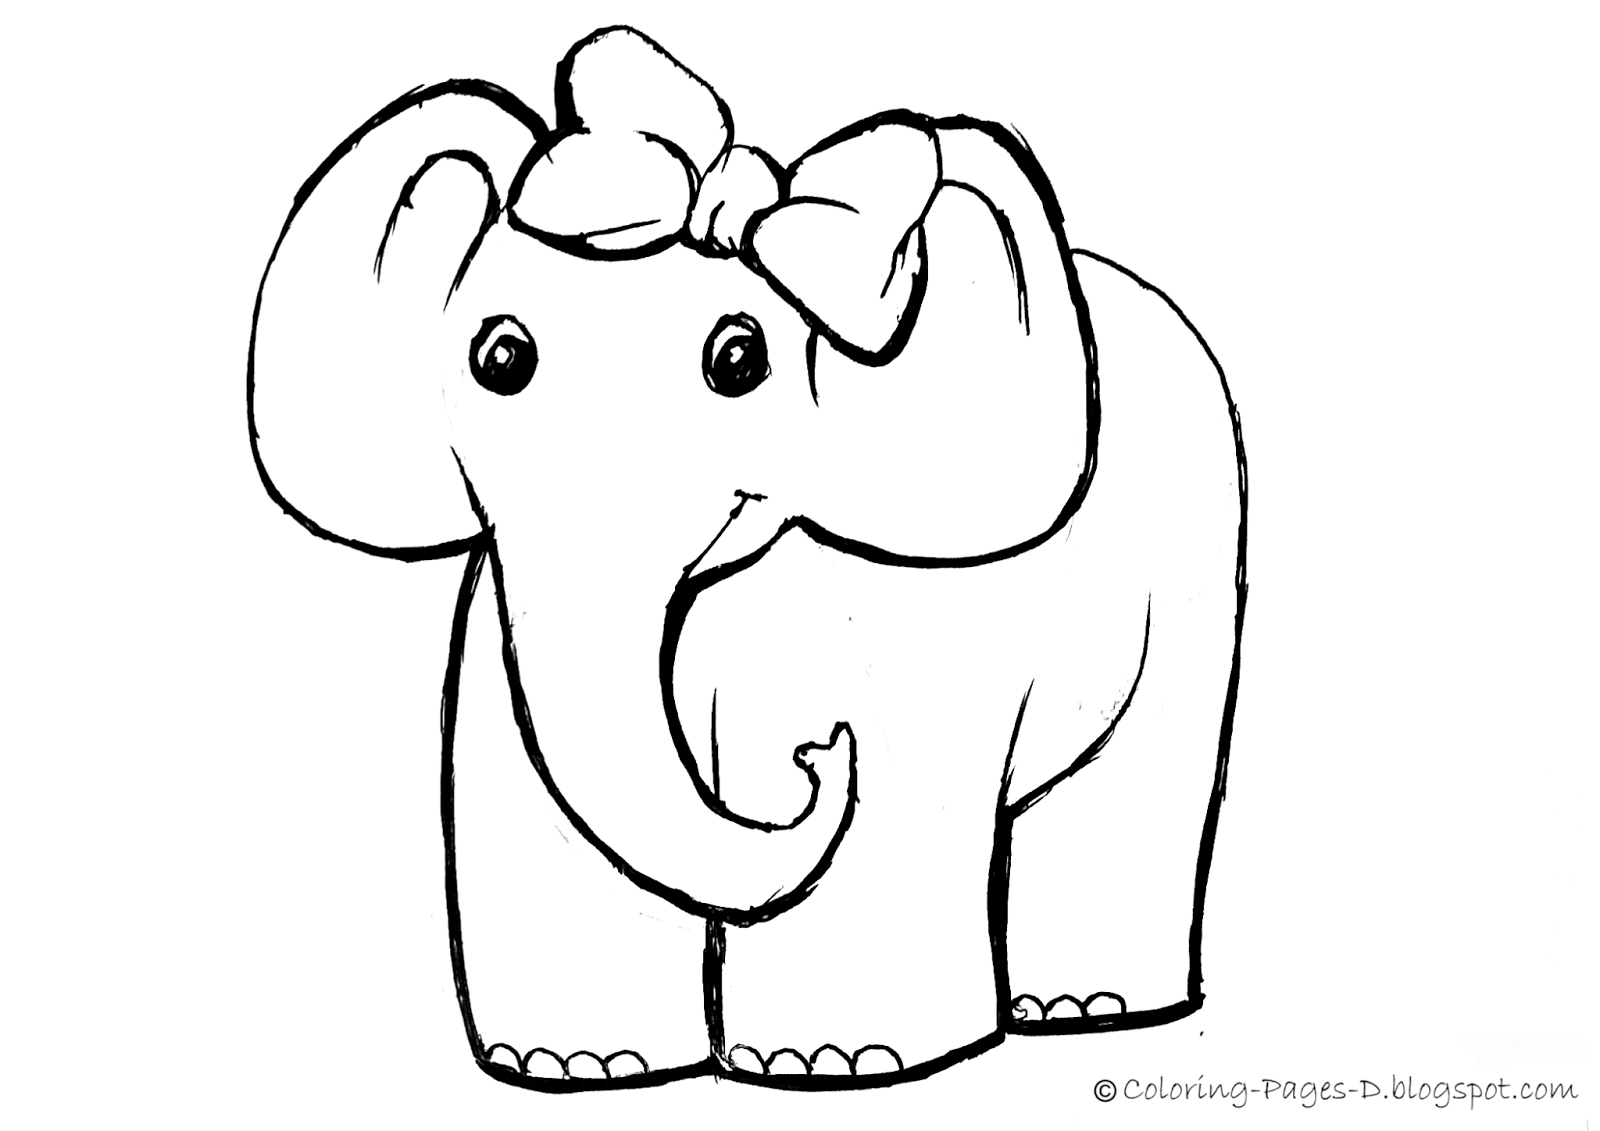 coloring pages to draw for children   coloring pages D: Free Elephant Coloring Pages